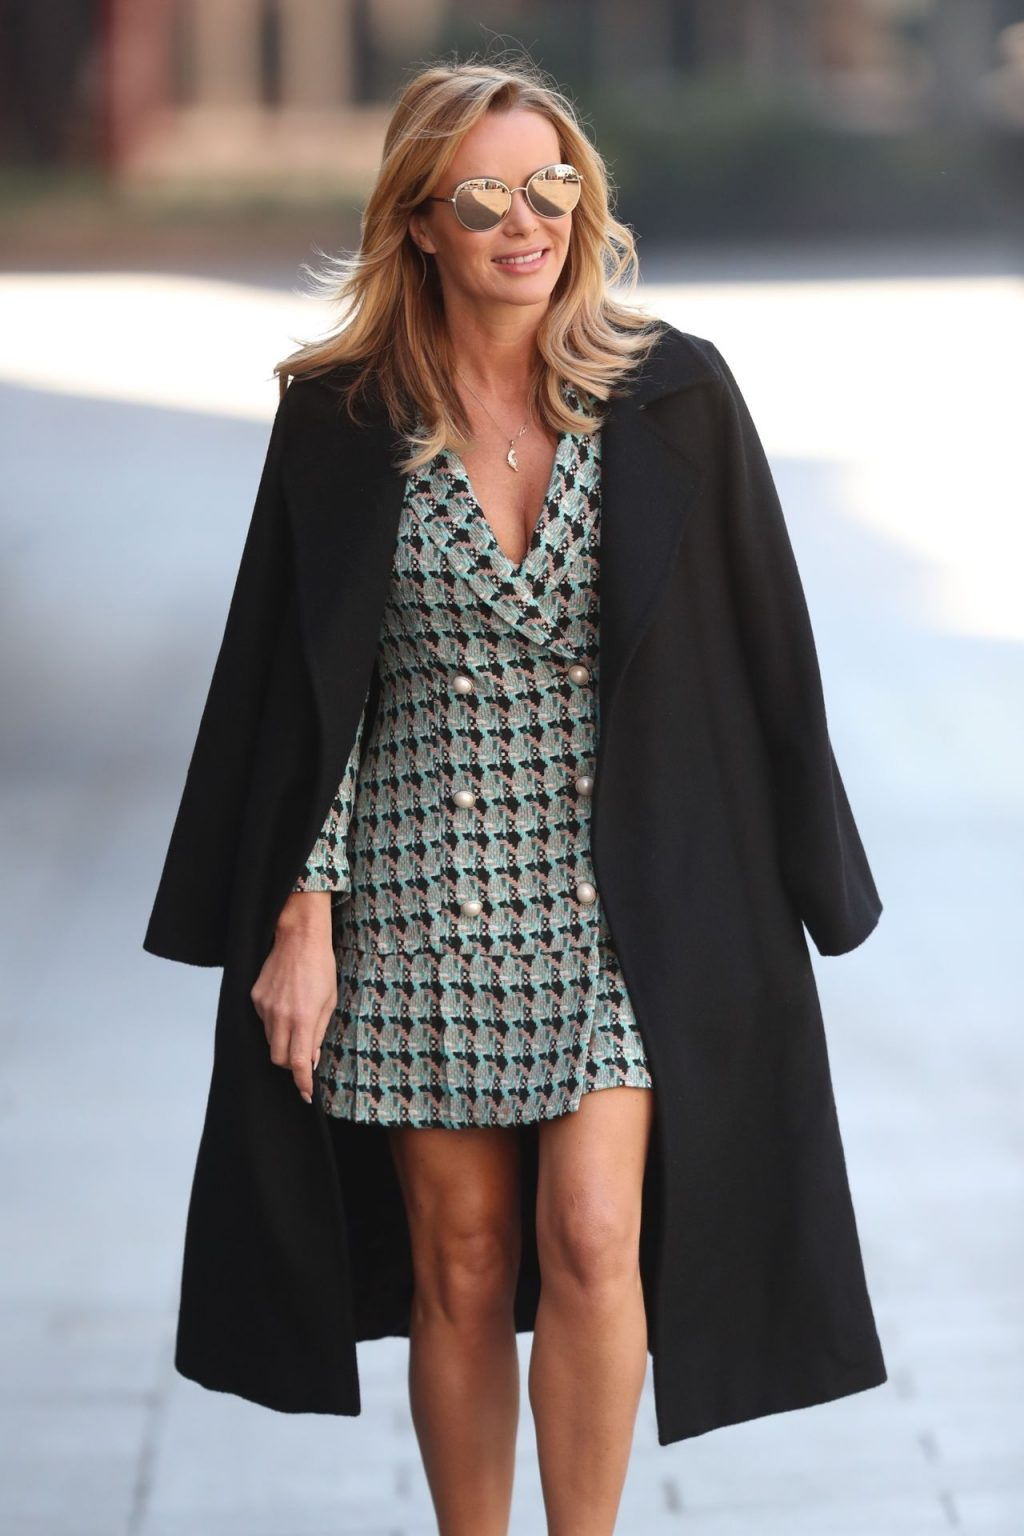 Amanda Holden Pictured While Leaving Heart Radio Show in Knitted Dress (14 Photos)